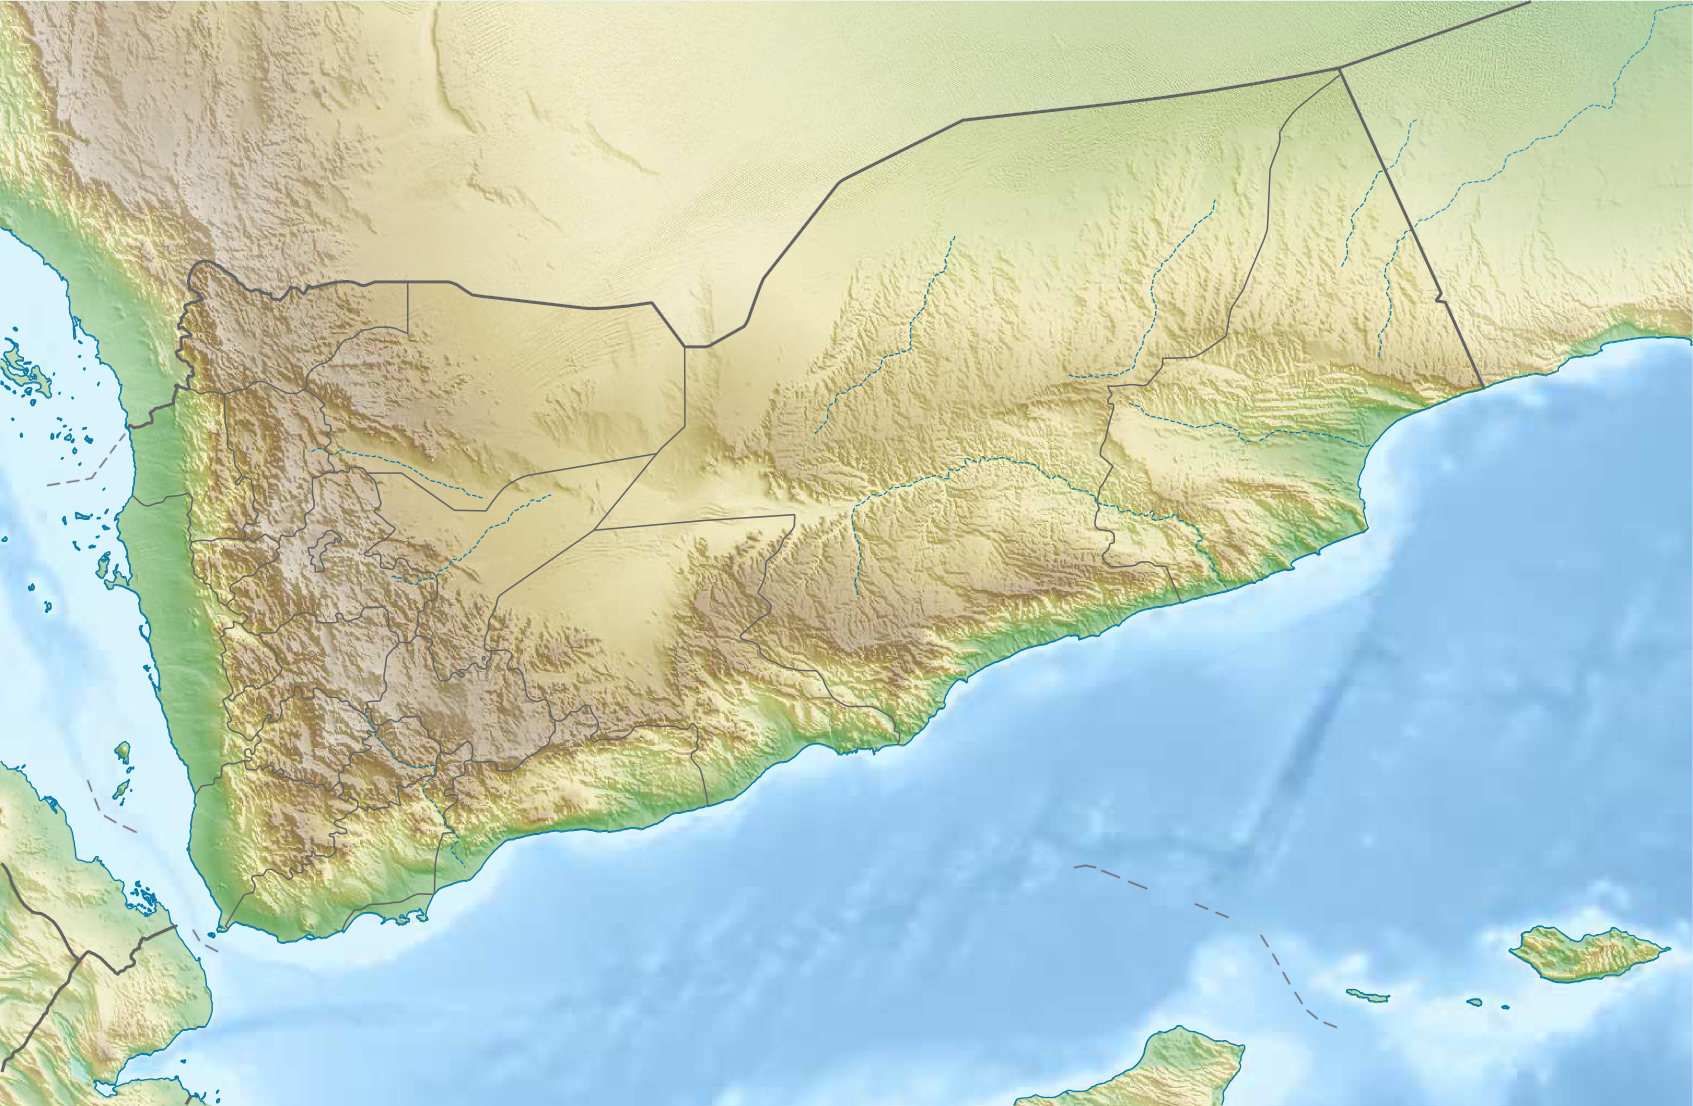 Geography of Yemen - Wikipedia on yemen physical features, yemen mountains, yemen sports,